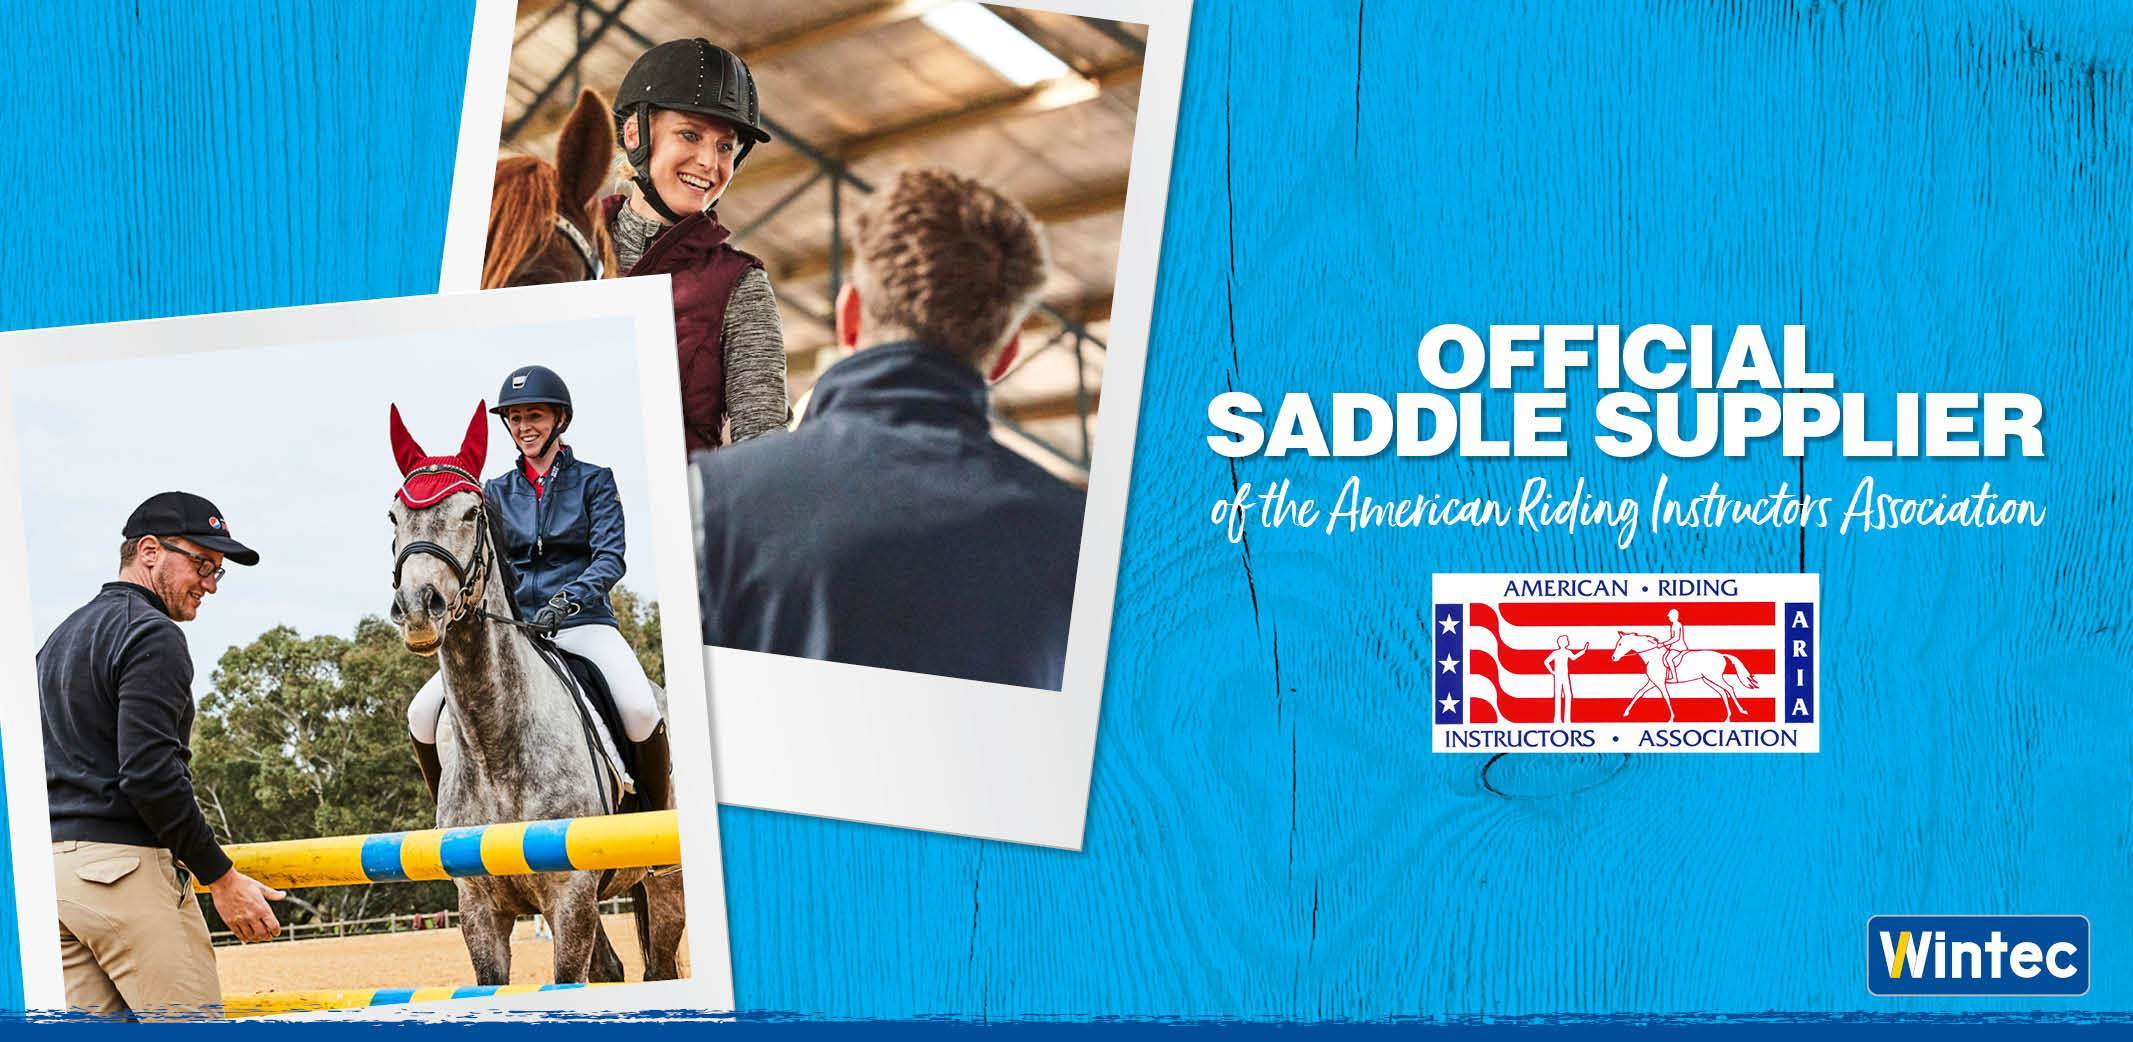 Official Saddle Supplier of the American Riding Instructors Association